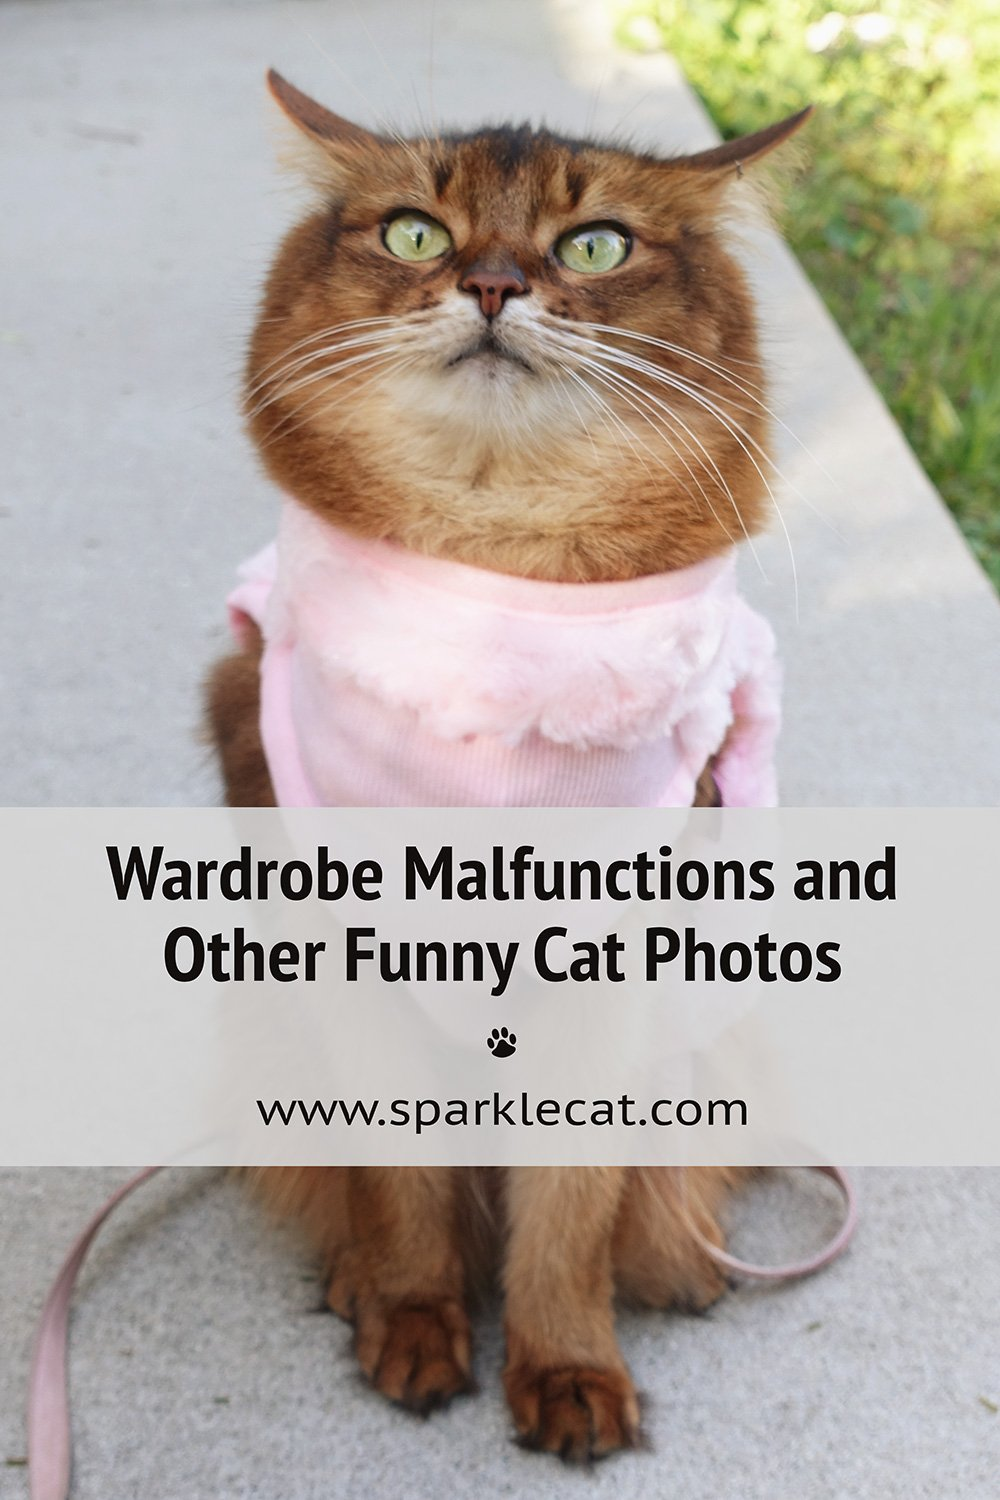 Wardrobe Malfunctions and Other Outtakes